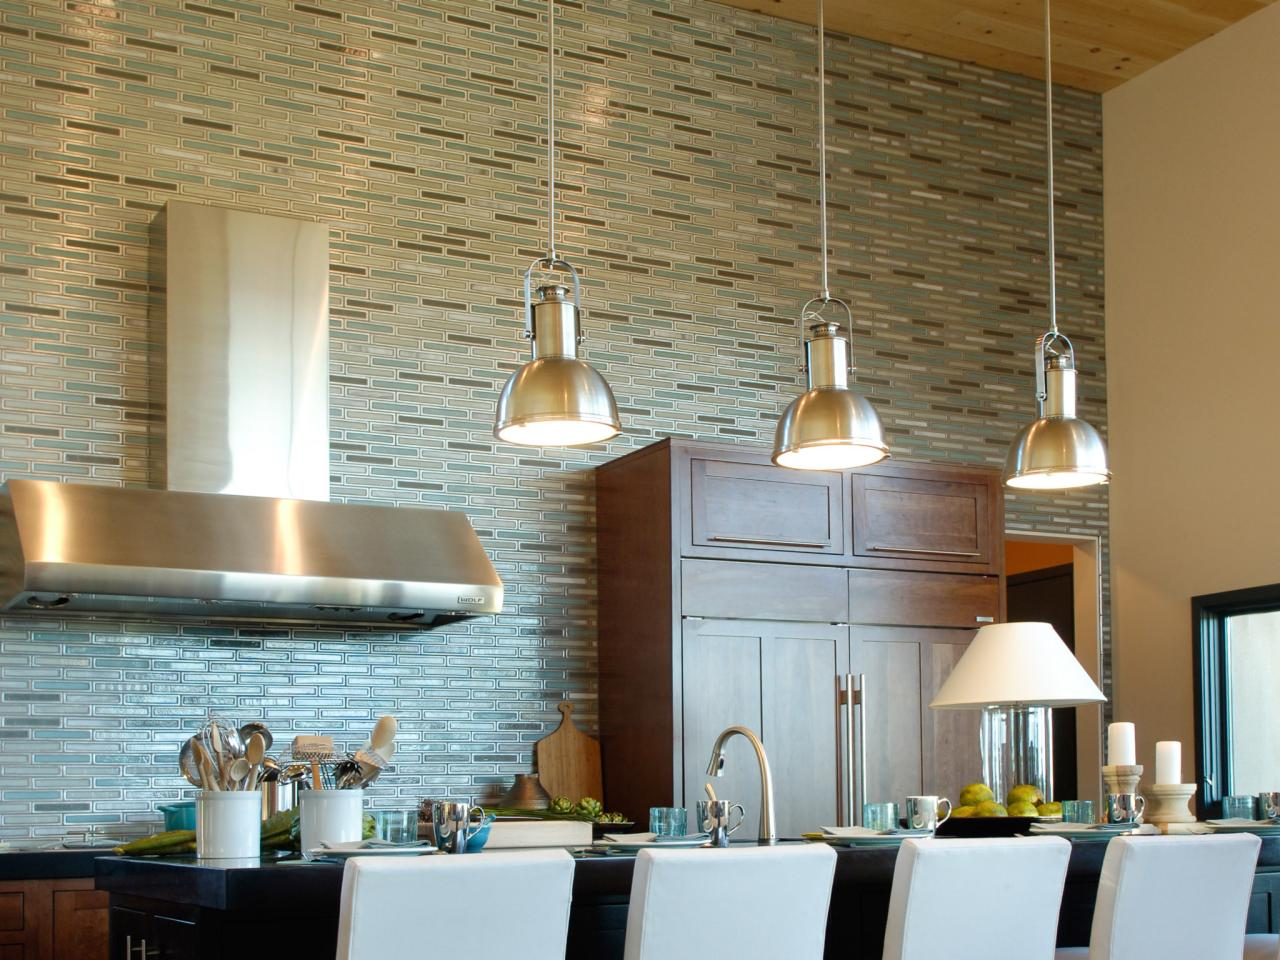 Tile backsplash ideas pictures tips from hgtv hgtv Kitchen design of tiles